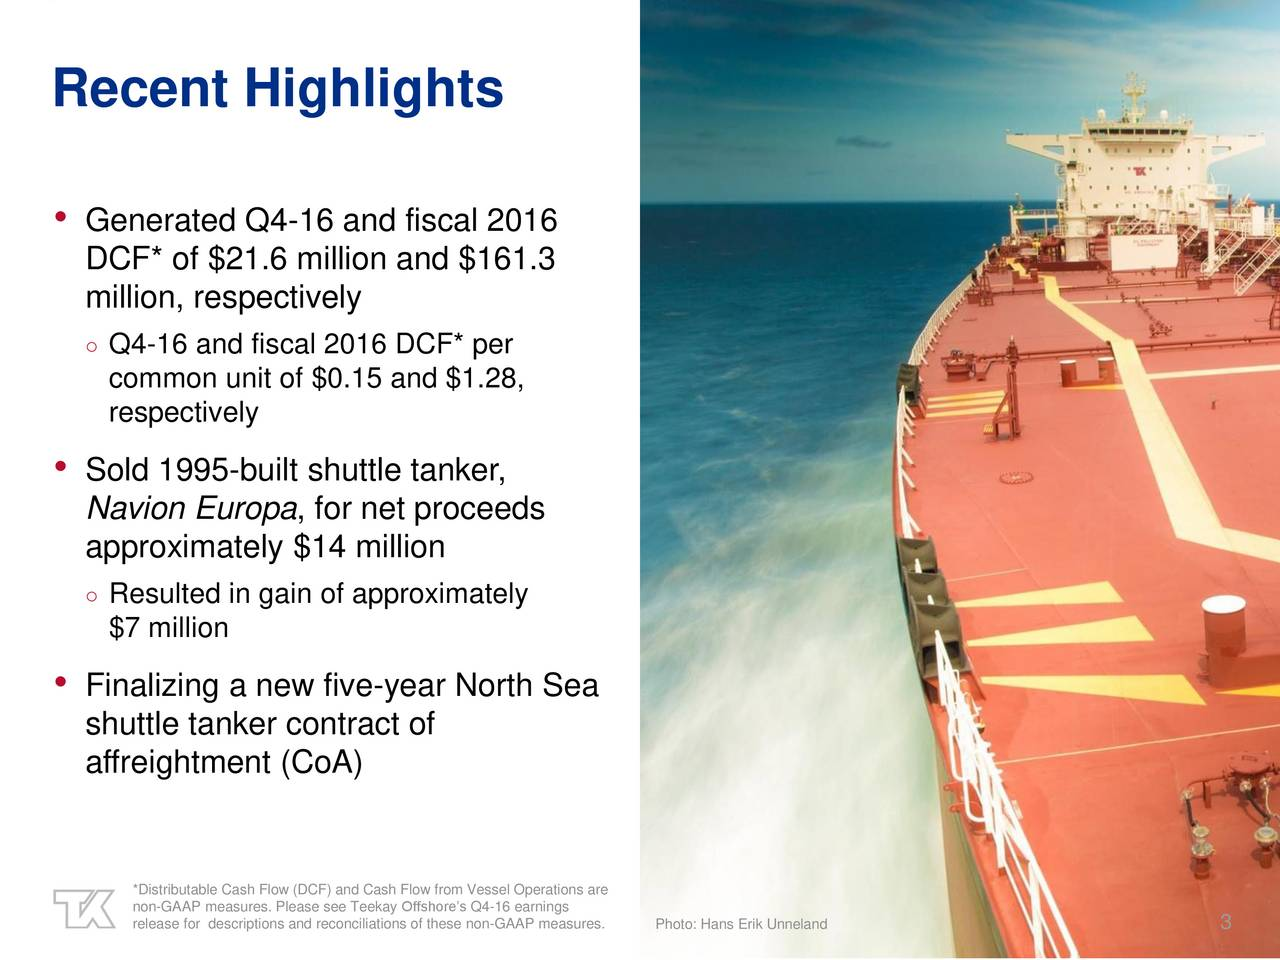 Generated Q4-16 and fiscal 2016 DCF* of $21.6 million and $161.3 million, respectively Q4-16 and fiscal 2016 DCF* per common unit of $0.15 and $1.28, respectively Sold 1995-built shuttle tanker, Navion Europa, for net proceeds approximately $14 million Resulted in gain of approximately $7 million Finalizing a new five-year North Sea shuttle tanker contract of affreightment (CoA) non-GAAP measures. Please see Teekay Offshores Q4-16 earningsnelandare release for descriptions and reconciliationPLibra FPSO conversion in progress 3